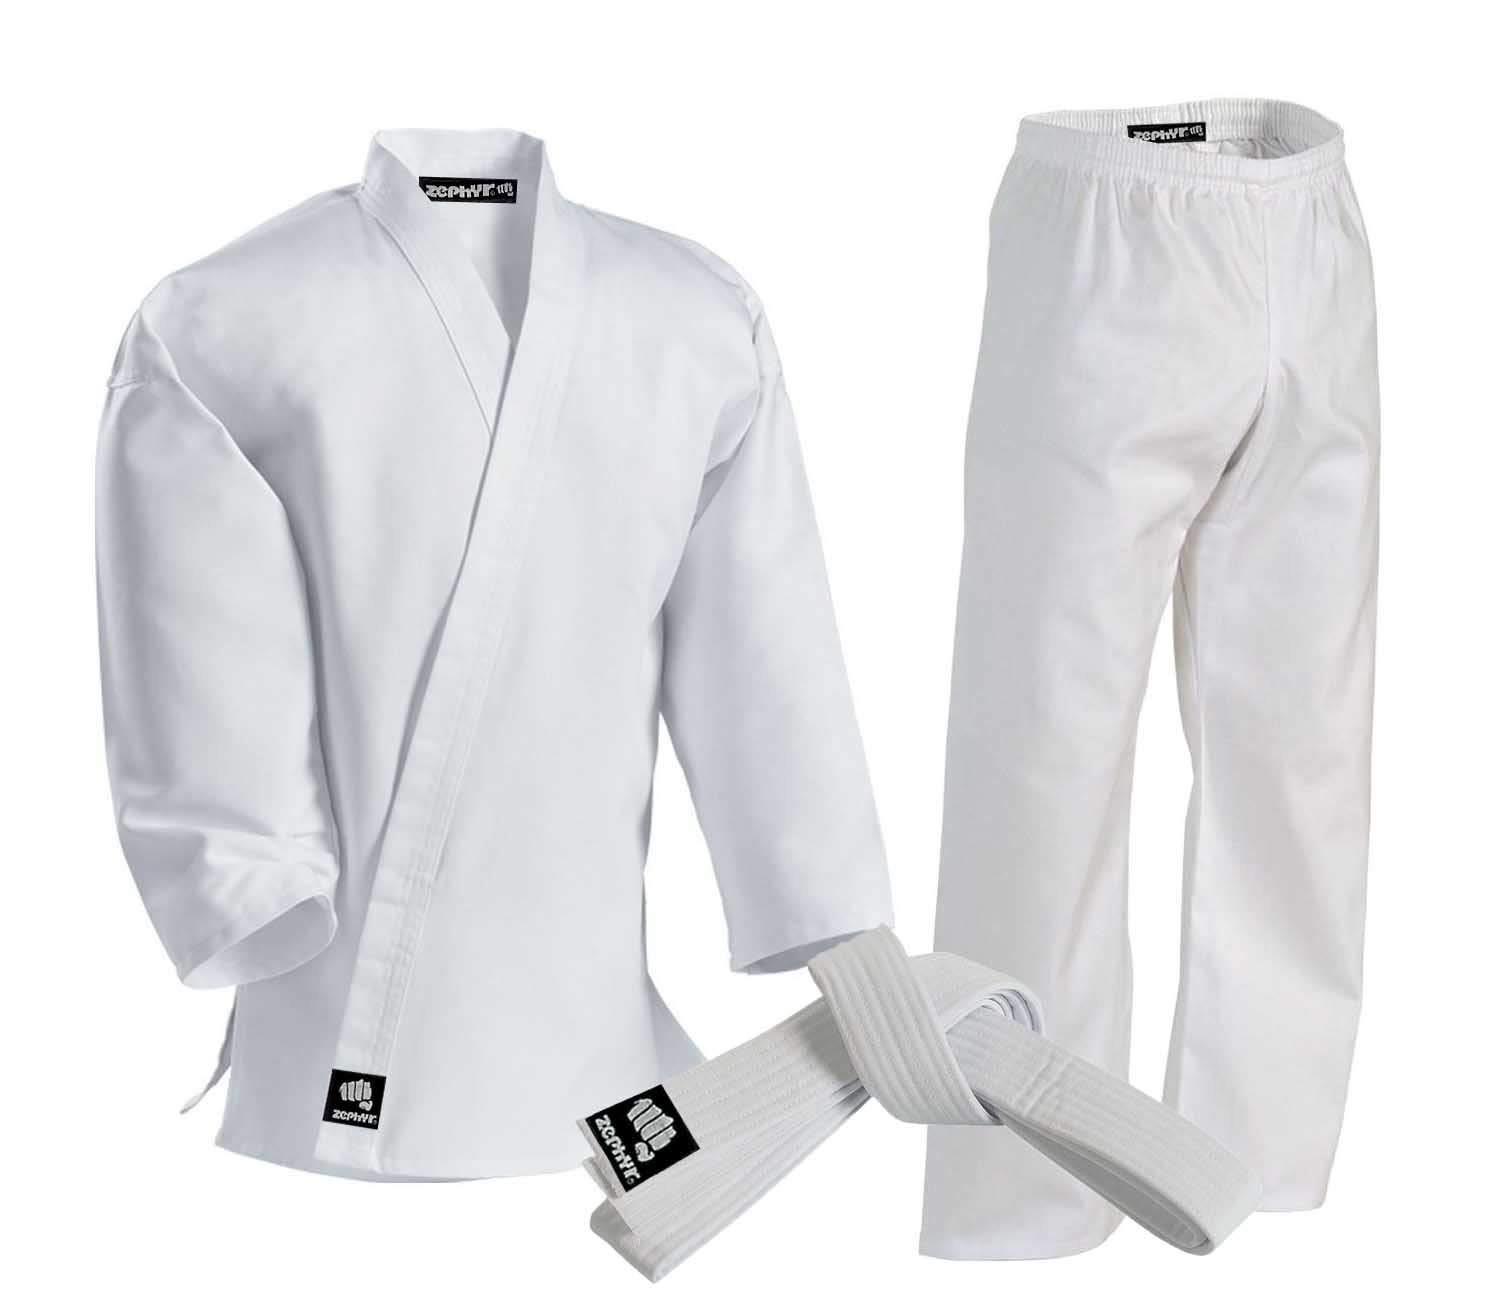 Zephyr Martial Arts Karate Gi Student Uniform with Belt - White - 3 by Zephyr Tactical